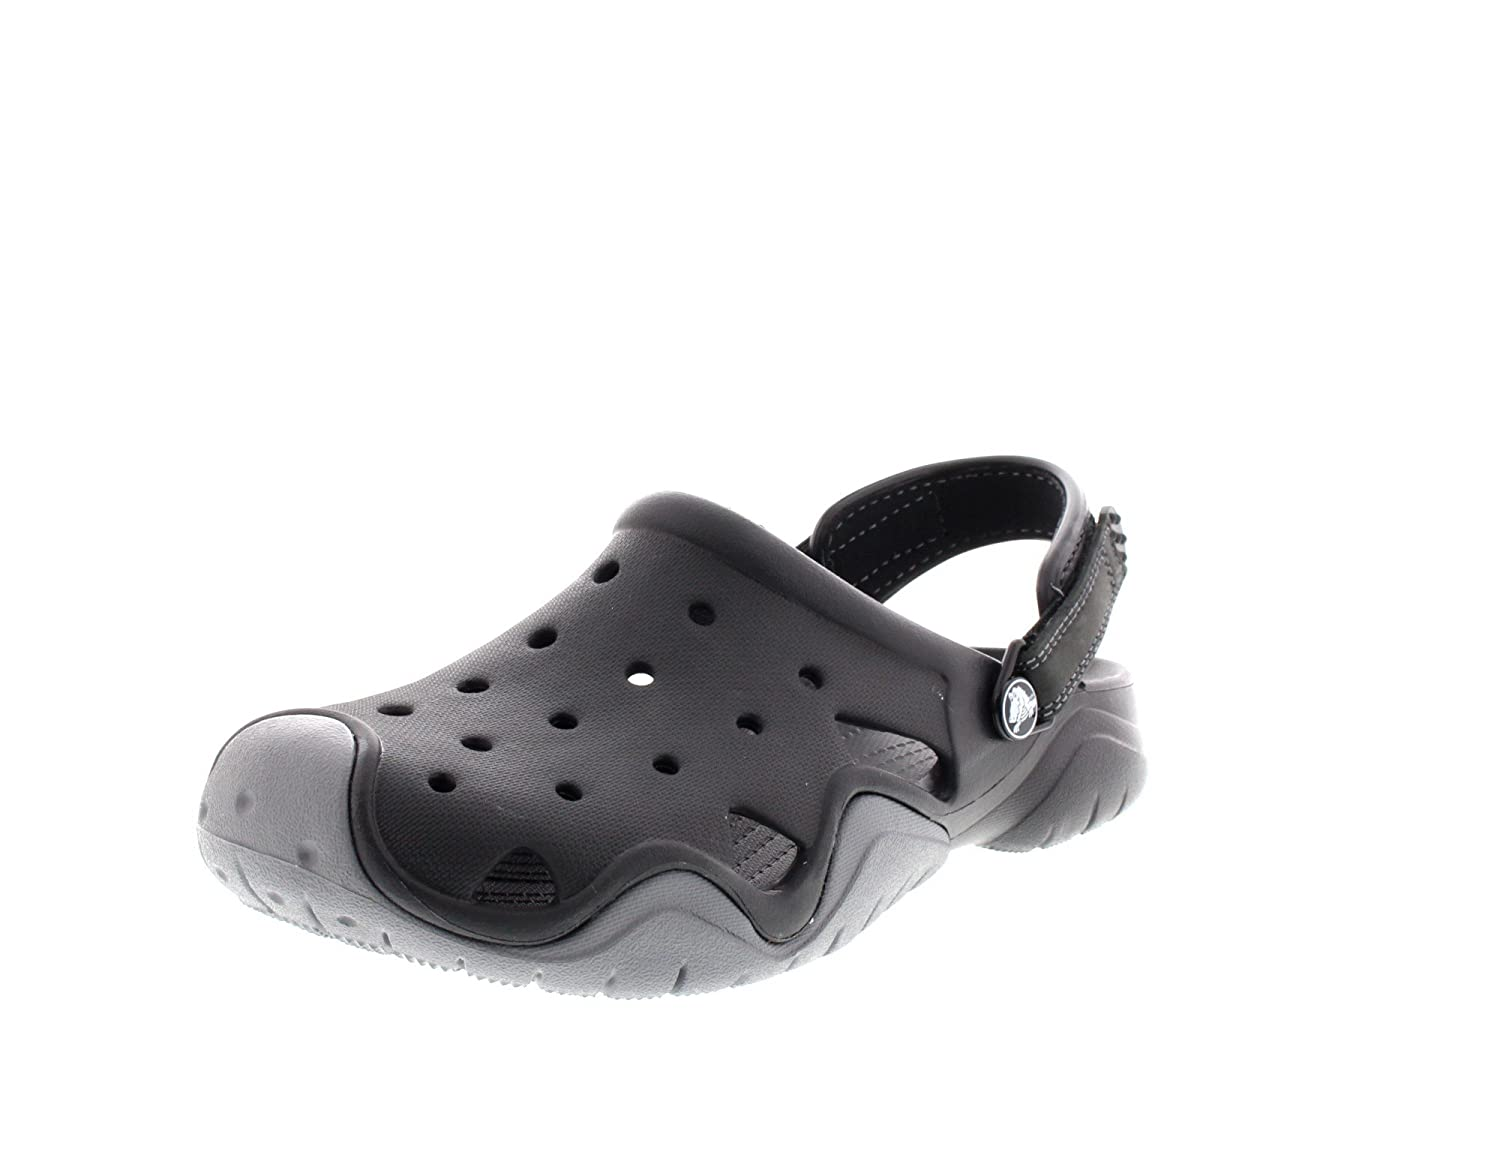 fdc3bc98be71e Crocs Swiftwater Clog Men  Amazon.co.uk  Shoes   Bags